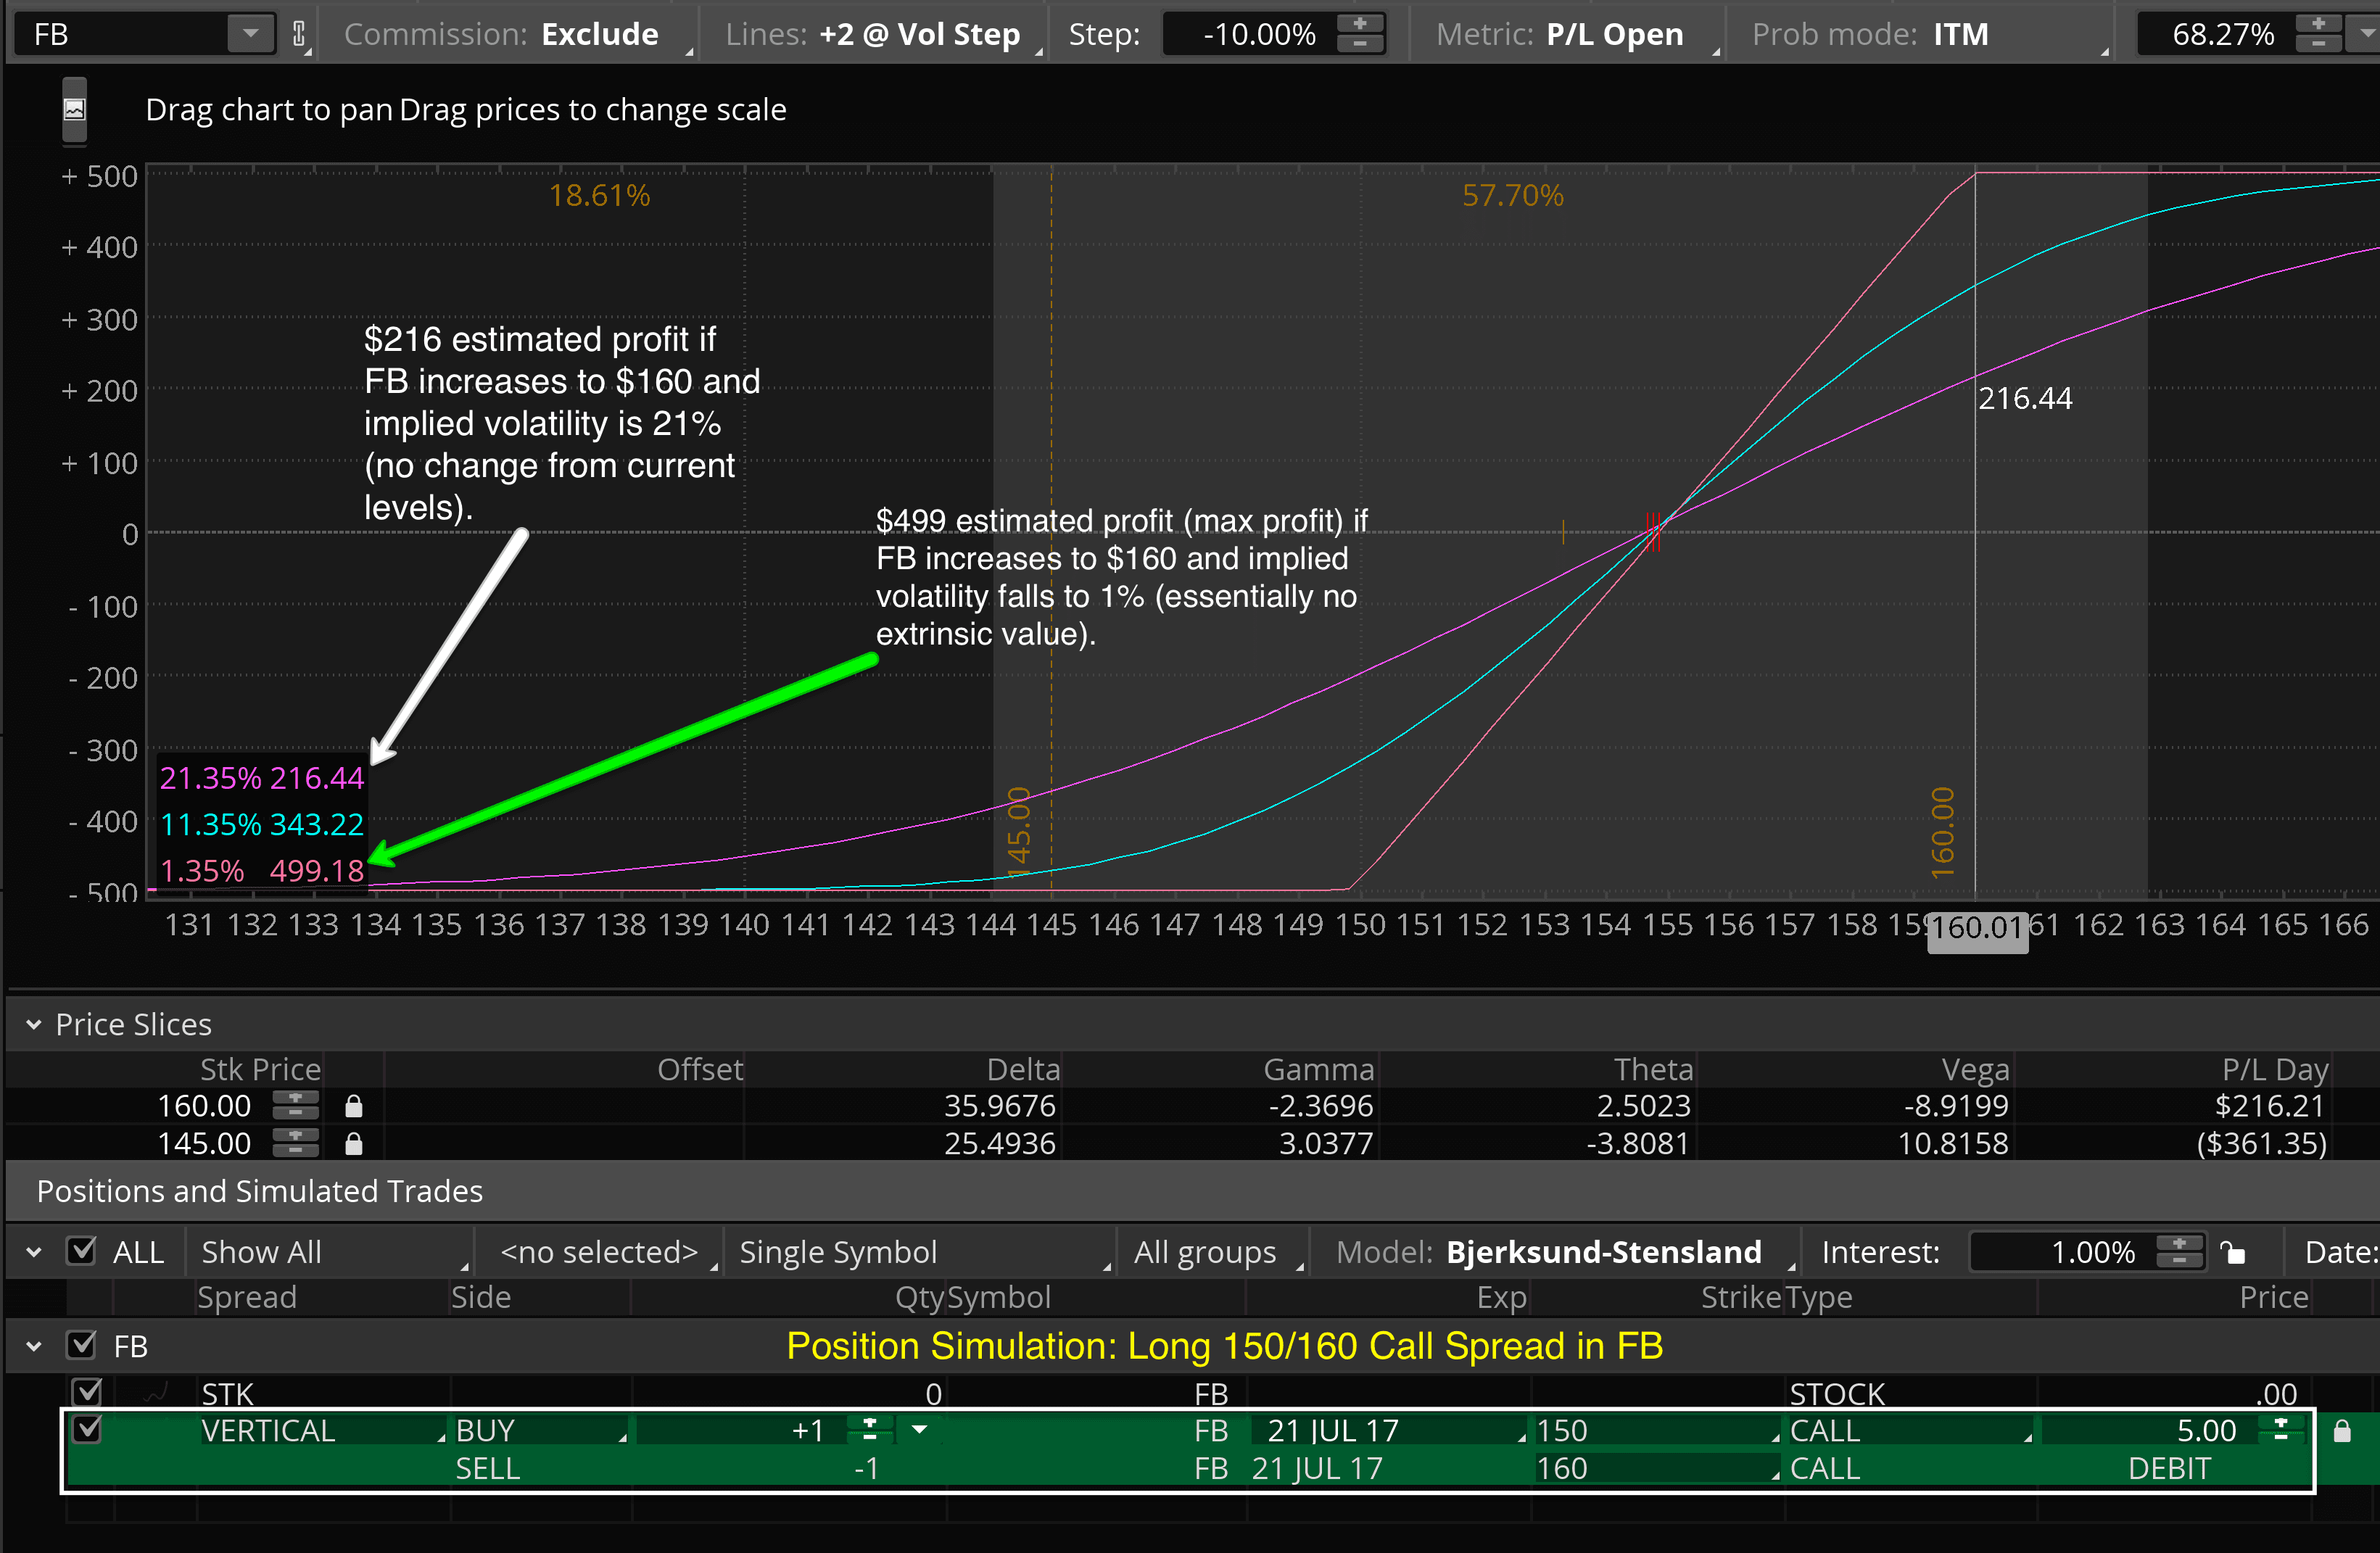 Vertical Spread Performance & Implied Volatility